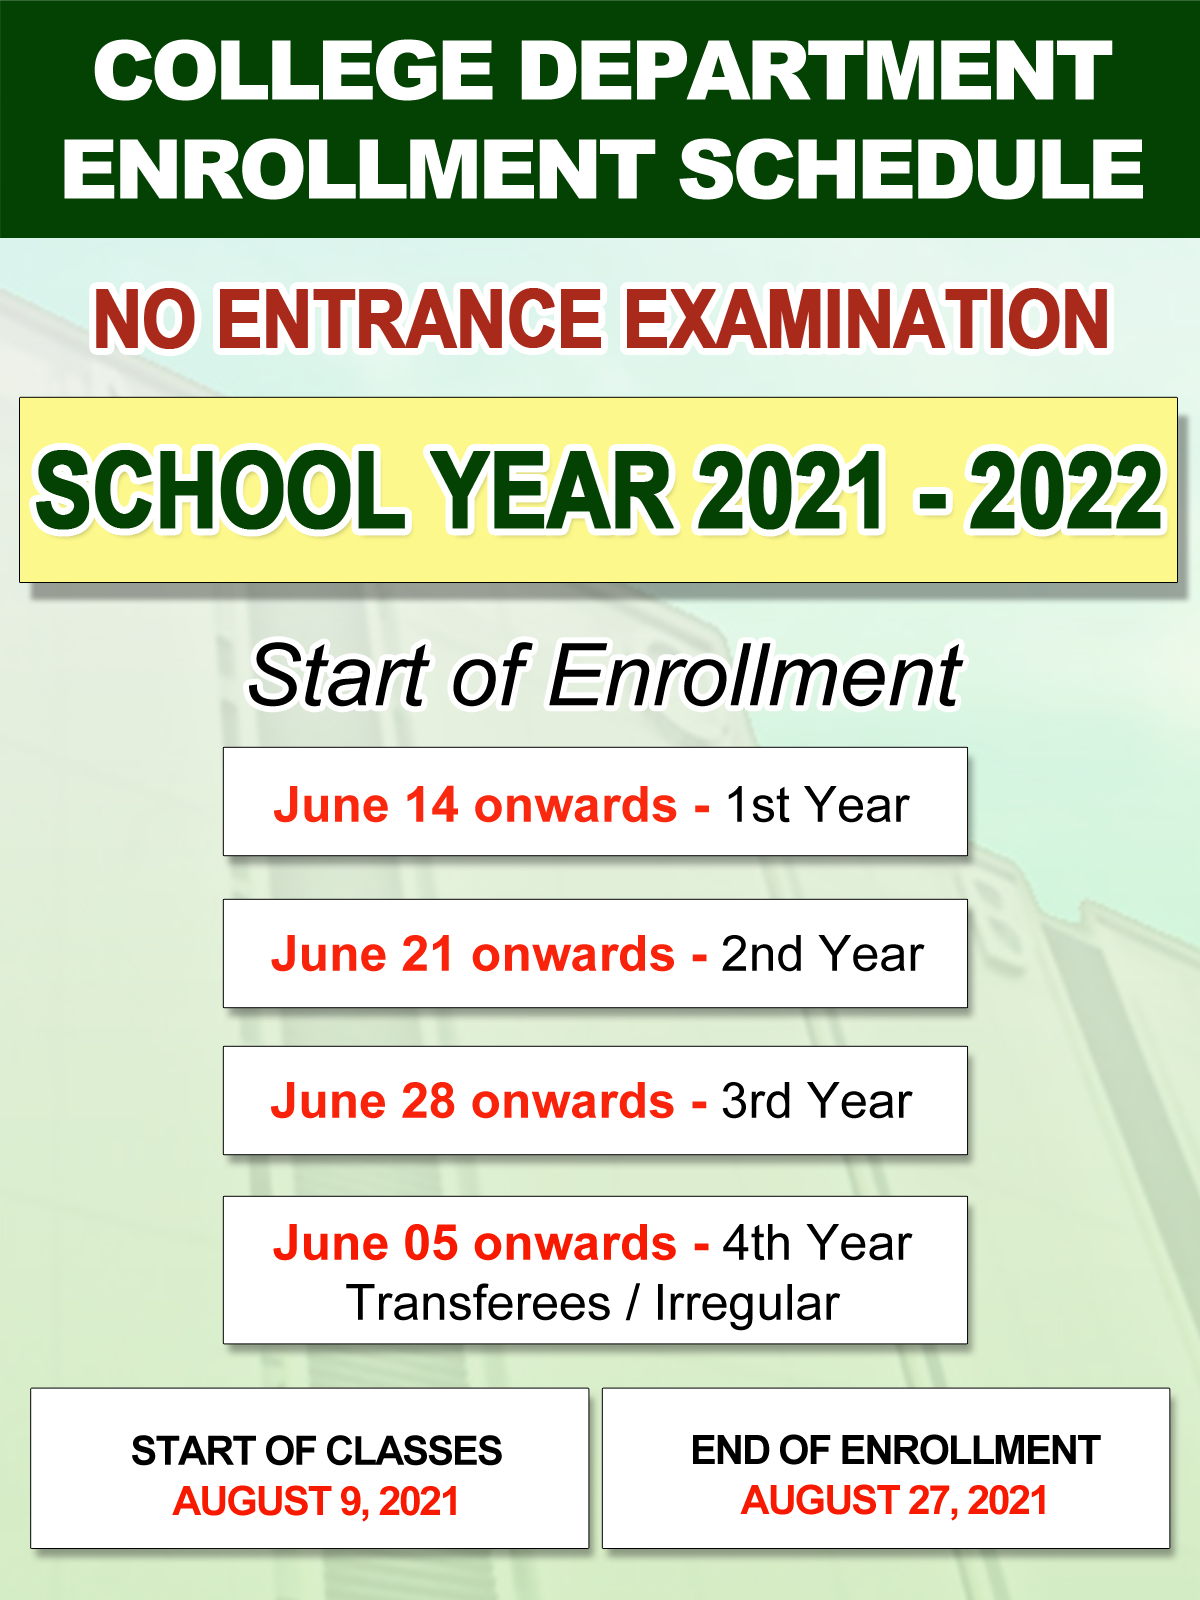 NCBA College Department Enrollment Schedules for SY 2021-2022